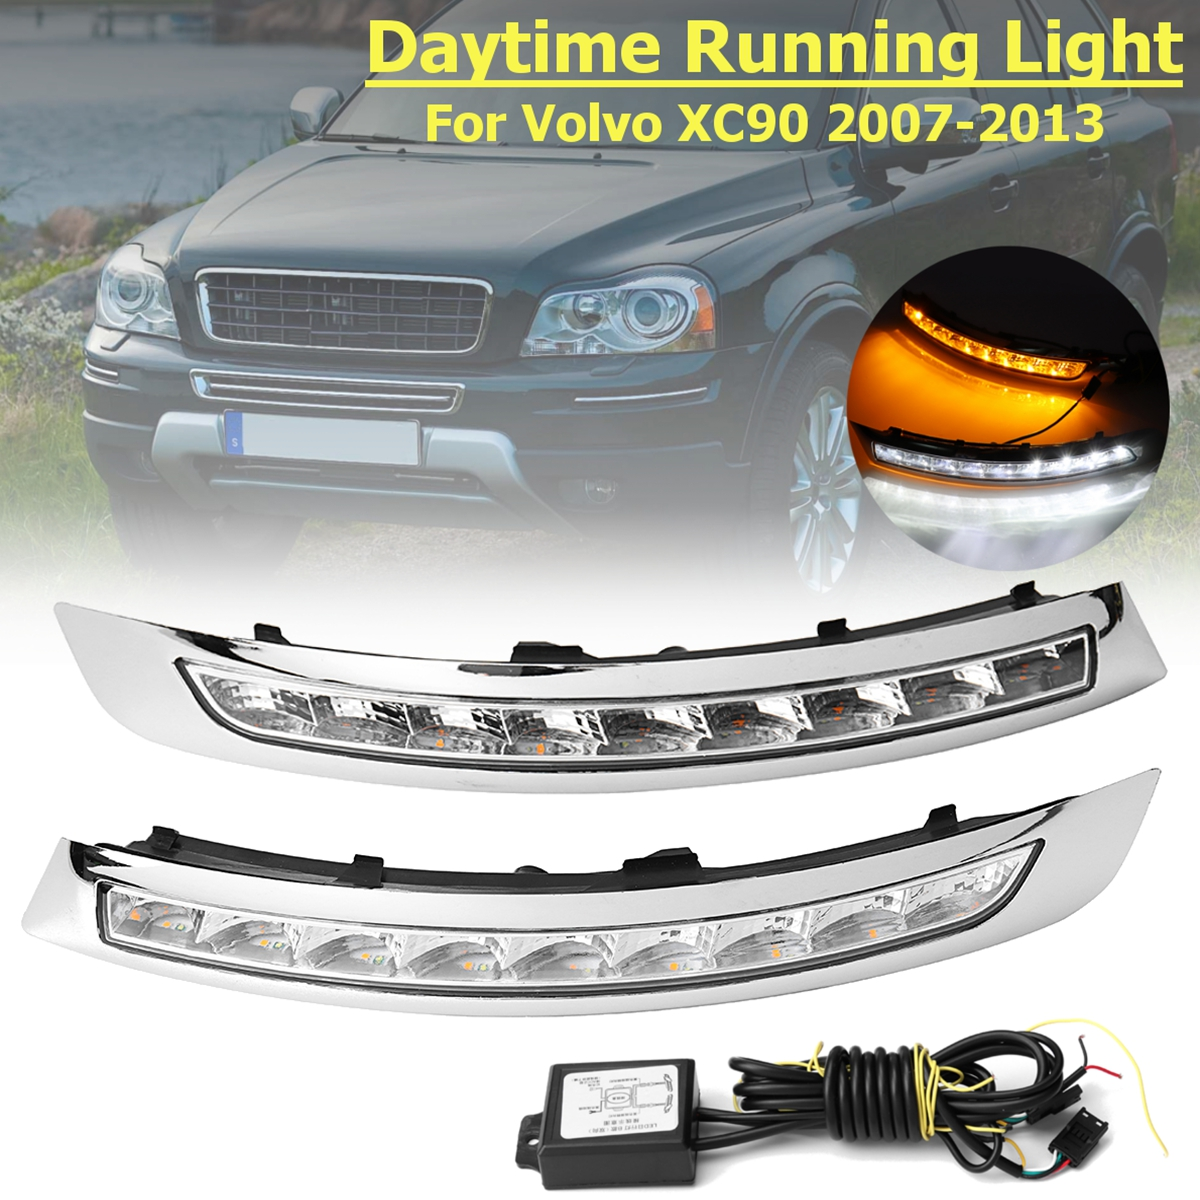 1 Pair Daytime Running Lights LED DRL Lamp Turning Signal fog lamp For Volvo XC90 2007 2008 2009 2010 2011 2012 2013 for chevrolet cruze 2009 2010 2011 2012 auto car 9 led drl daytime running lights fog lamp freeshipping d10